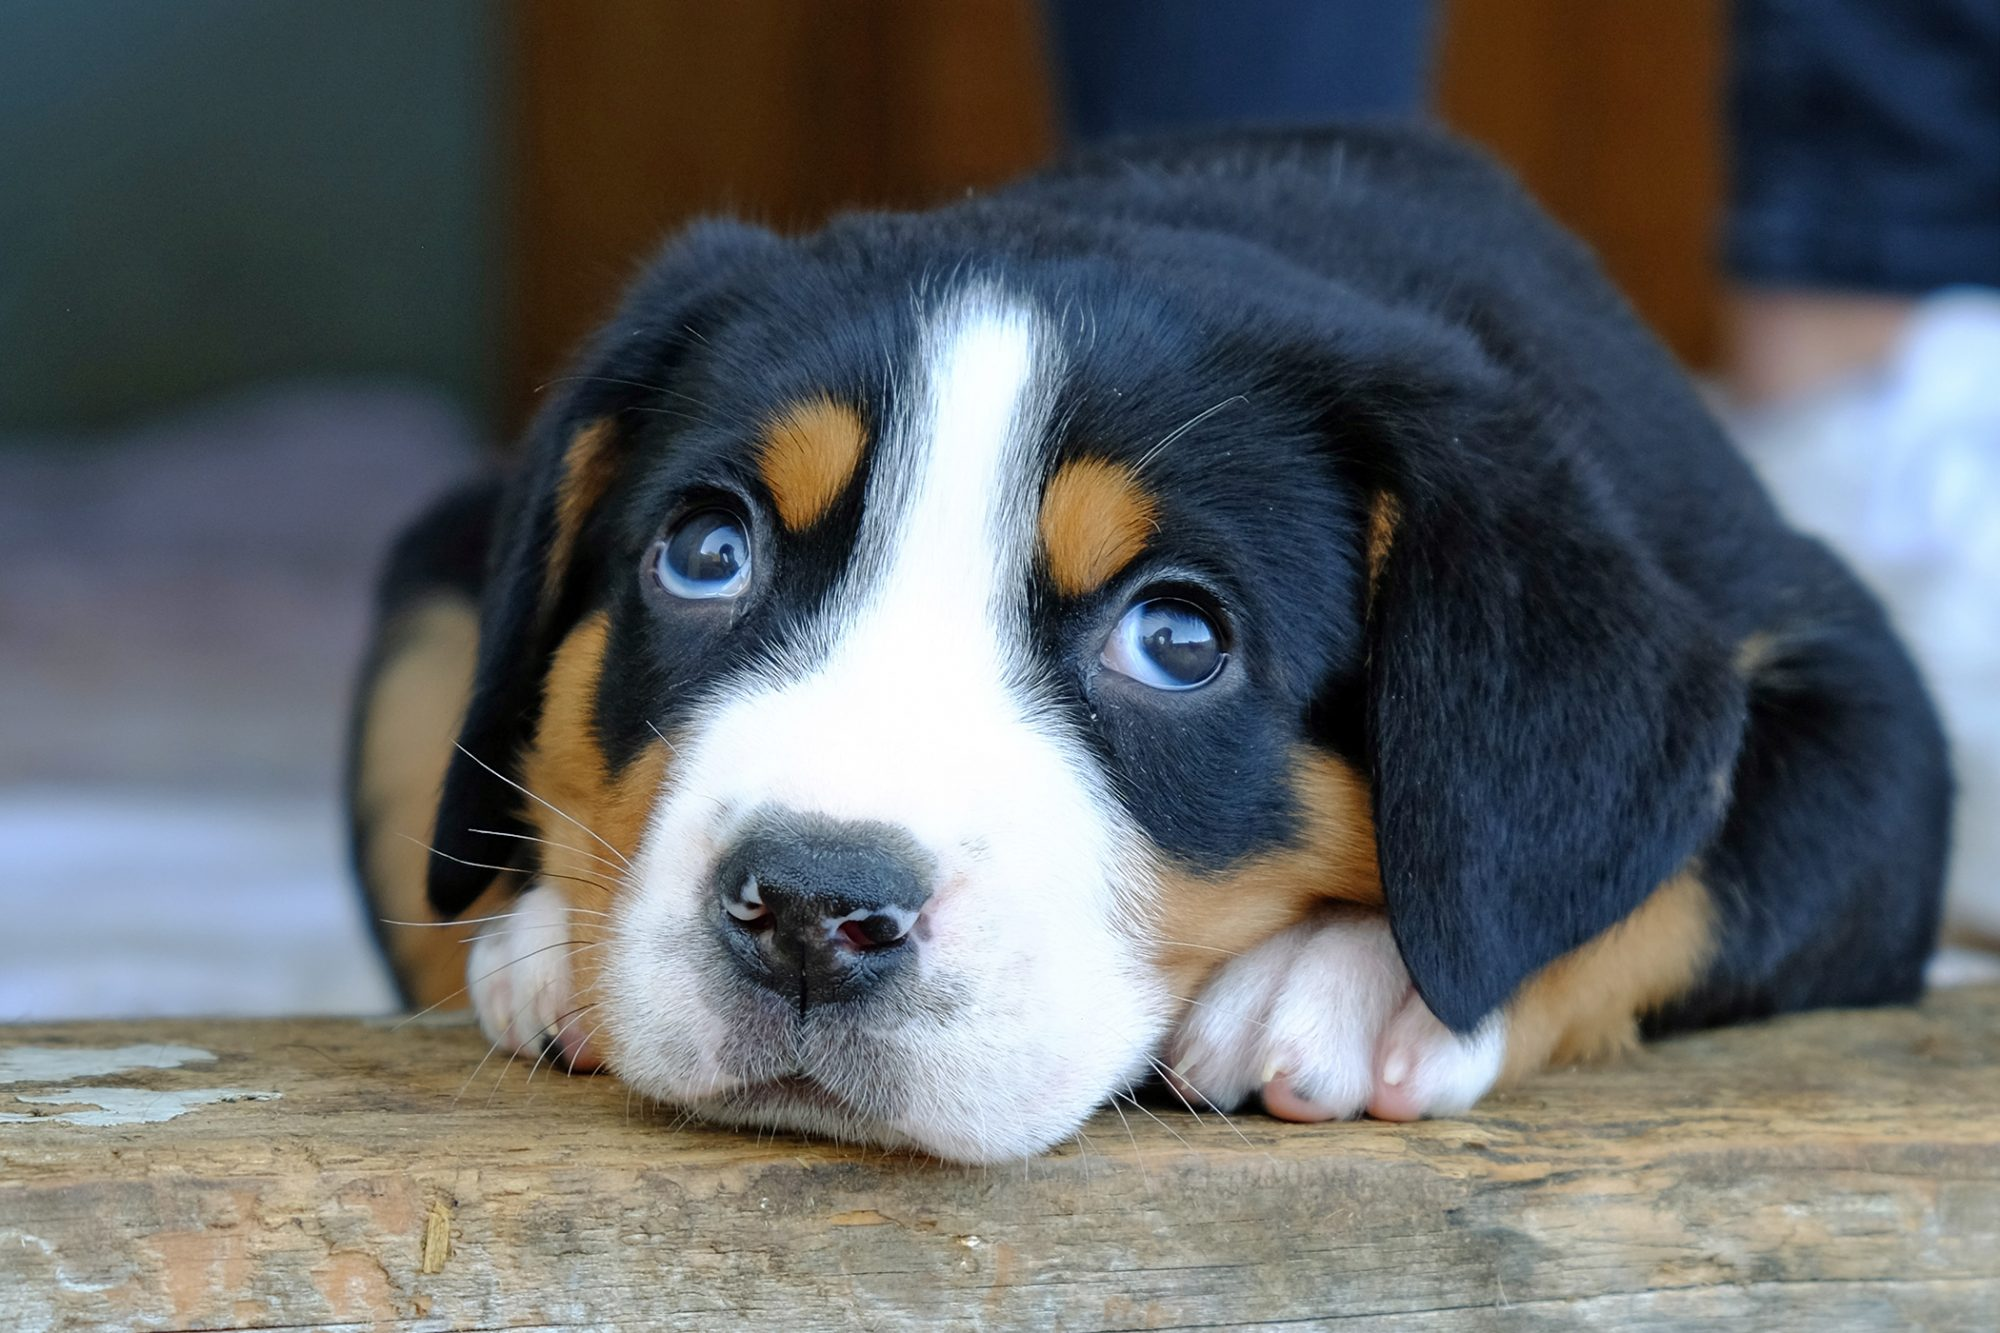 Greater Swiss Mountain Dog puppy looks up at photographer sweetly